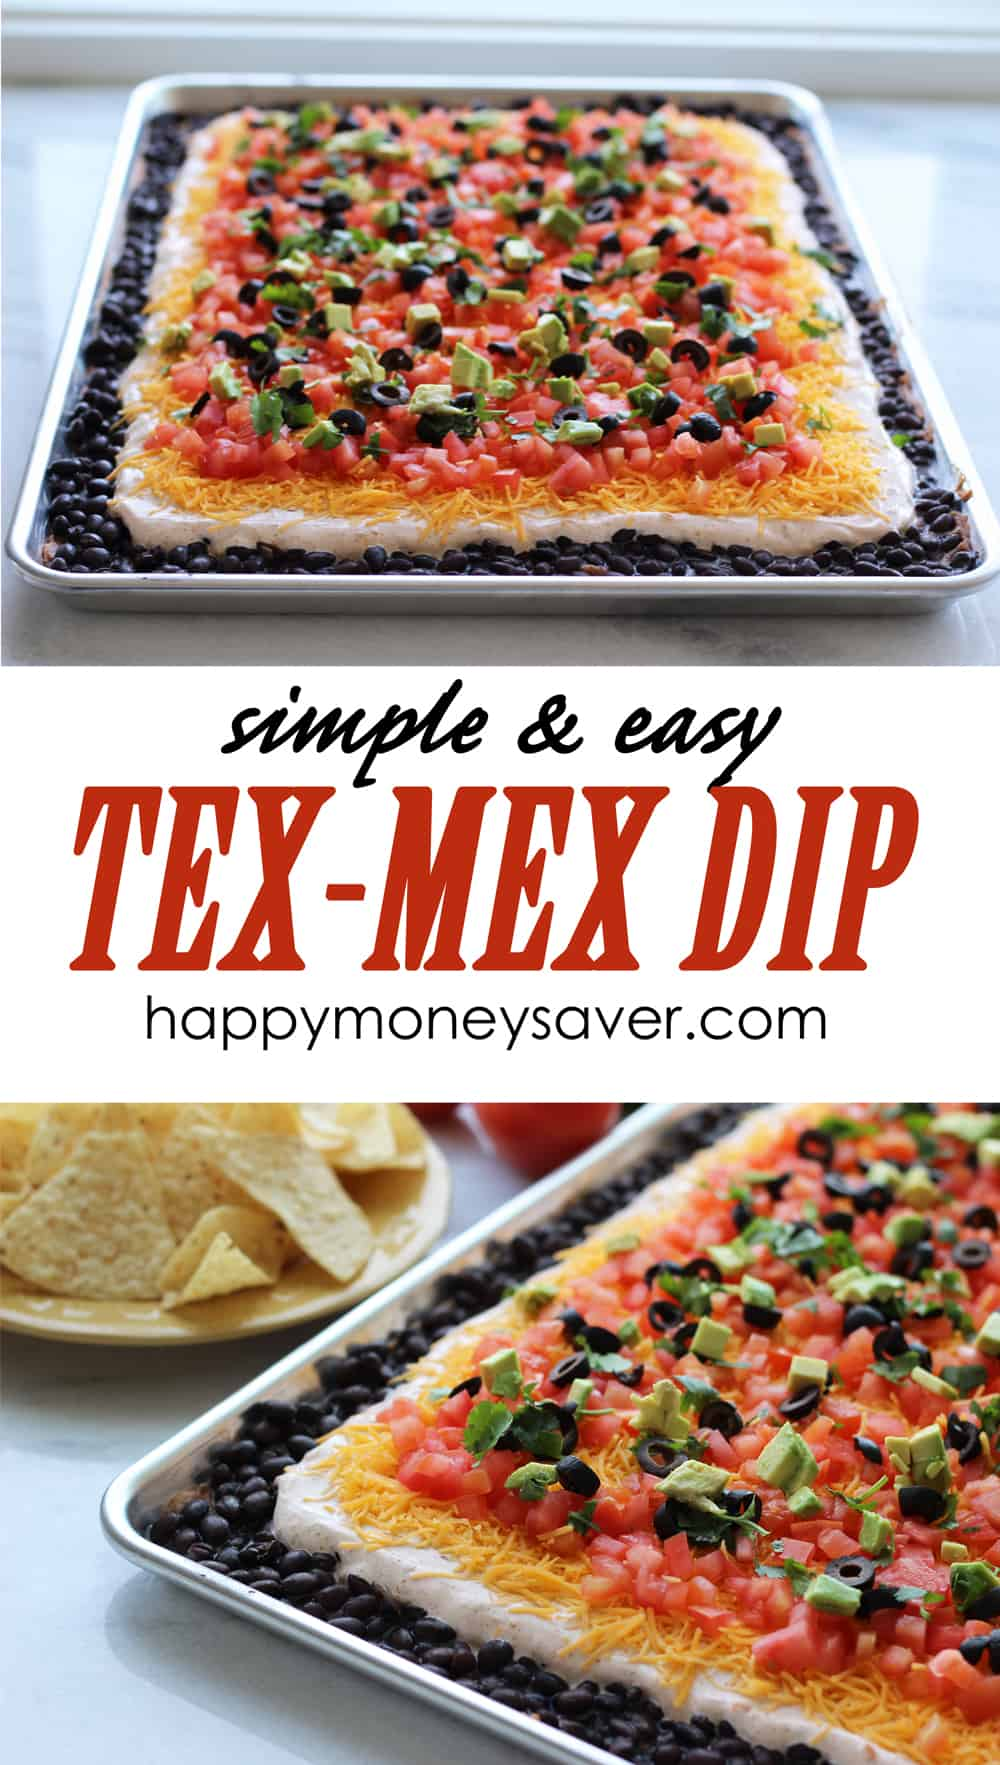 This simple and easy Tex Mex Dip recipe is not only delicious but BEAUTIFUL too! Includes 7 layers of awesome and can feed a large crowd. Tex-Mex Dip Recipe from HappyMoneySaver.com